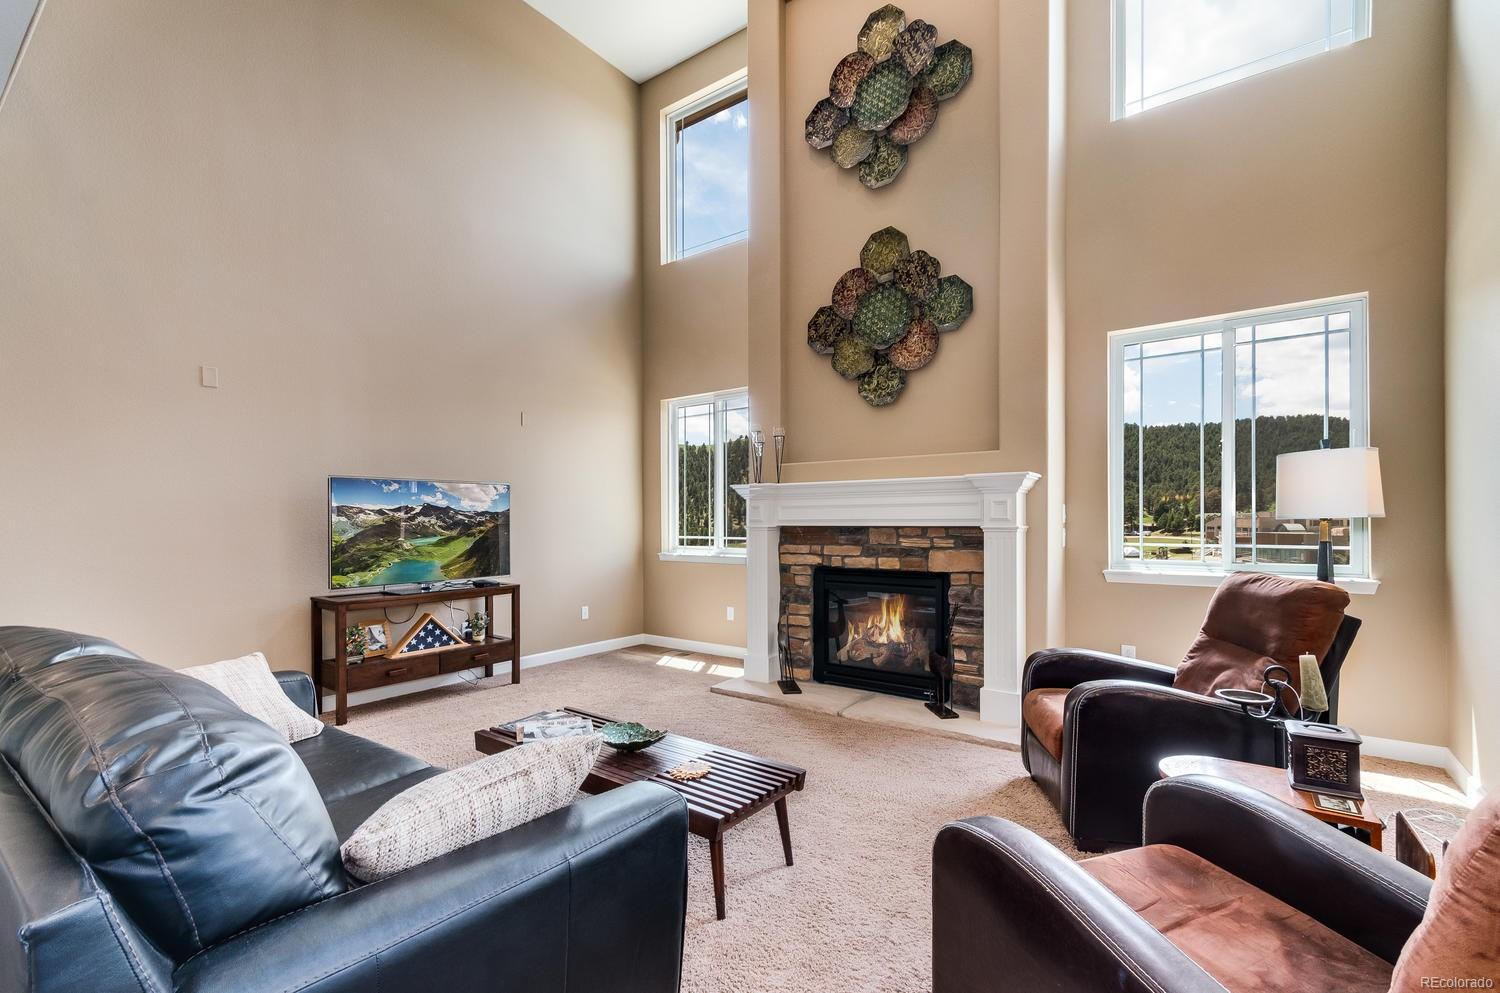 Captivating Mountain Views From Vaulted Family Room with Portrait Windows